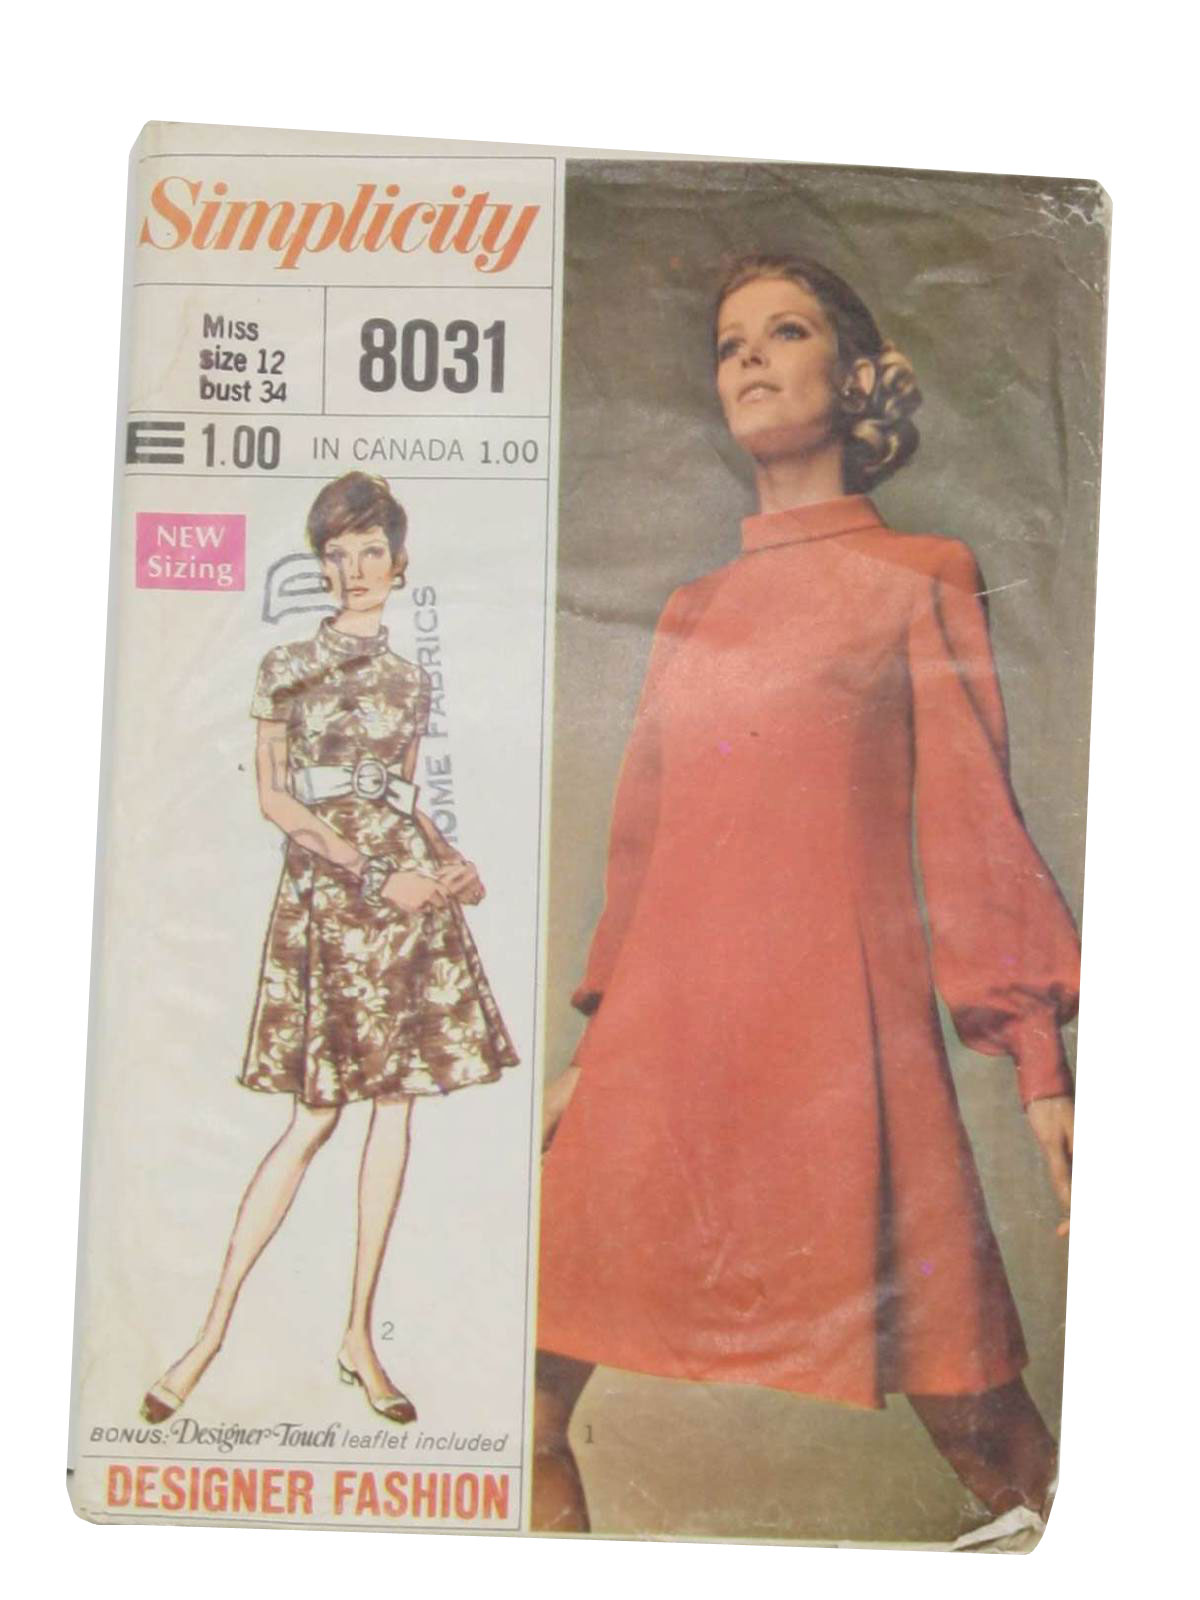 Retro 1960s sewing pattern 1969 simplicity pattern no 8031 8031 womens sewing pattern for misses dress designer fashion including designer touch leaflet loops and buttons the lined dress without side seams jeuxipadfo Images